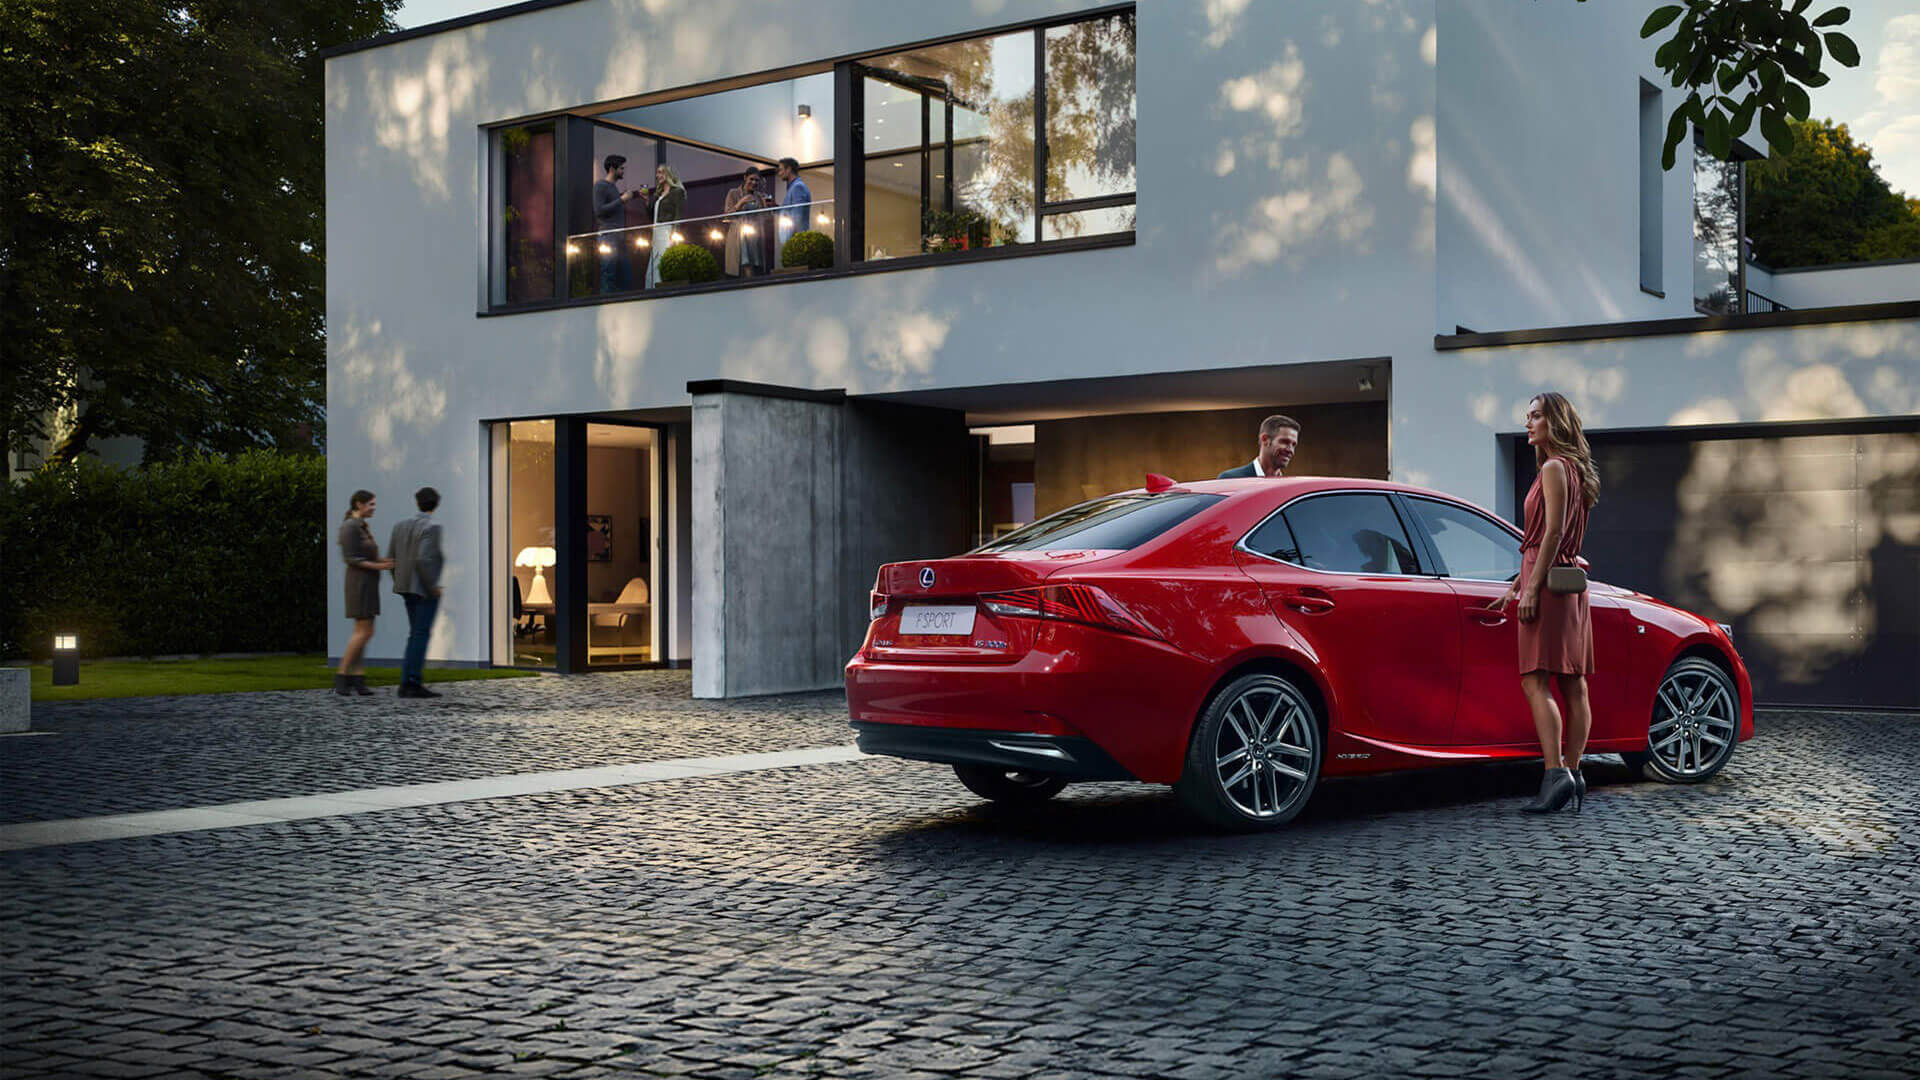 2018 lexus ownership ownershipHUB hero